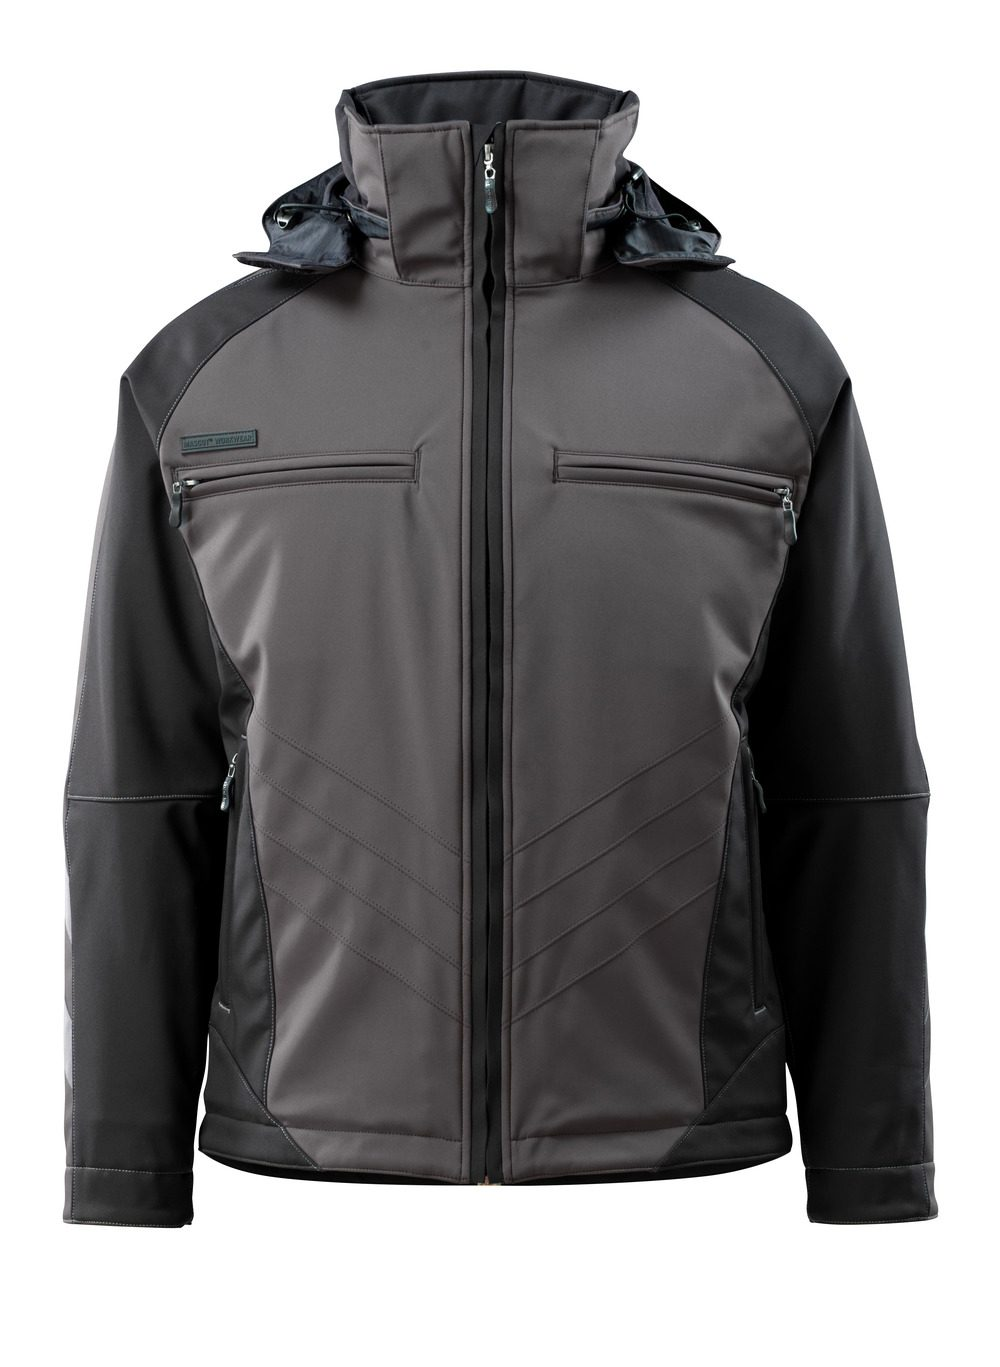 MASCOT Darmstadt SoftShell Winter Jacket